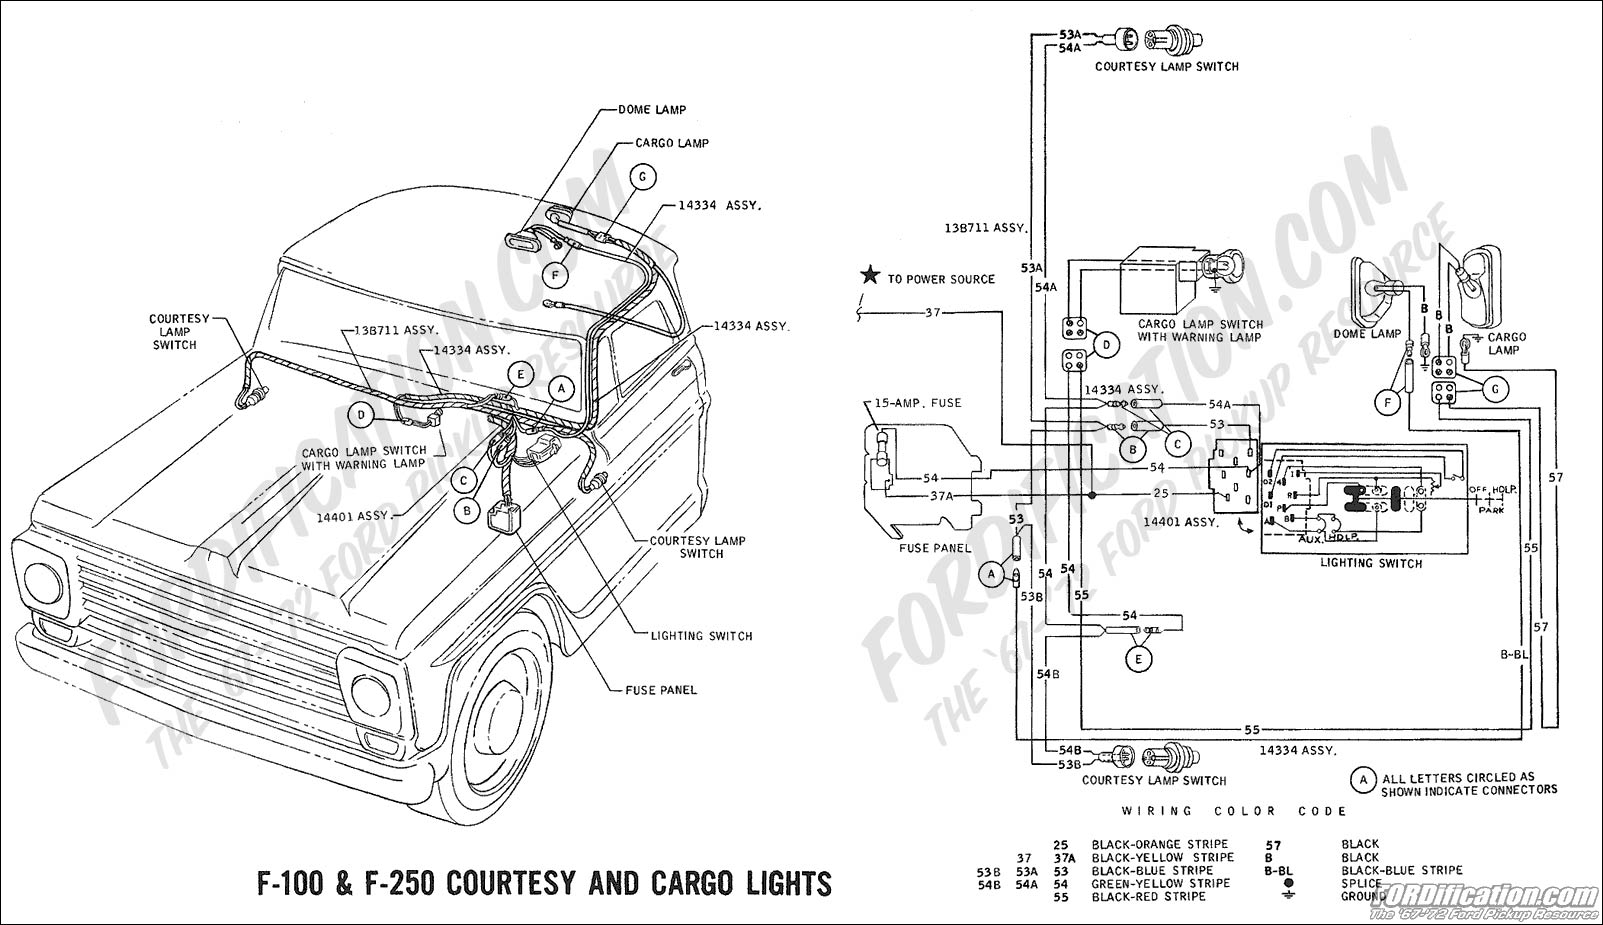 wiring a lamp plug with Schematics H on Schematics h additionally ment 15329 further Ck63 Field Control Wiring Diagram moreover ShowAssembly moreover File Electrical Symbols IEC.